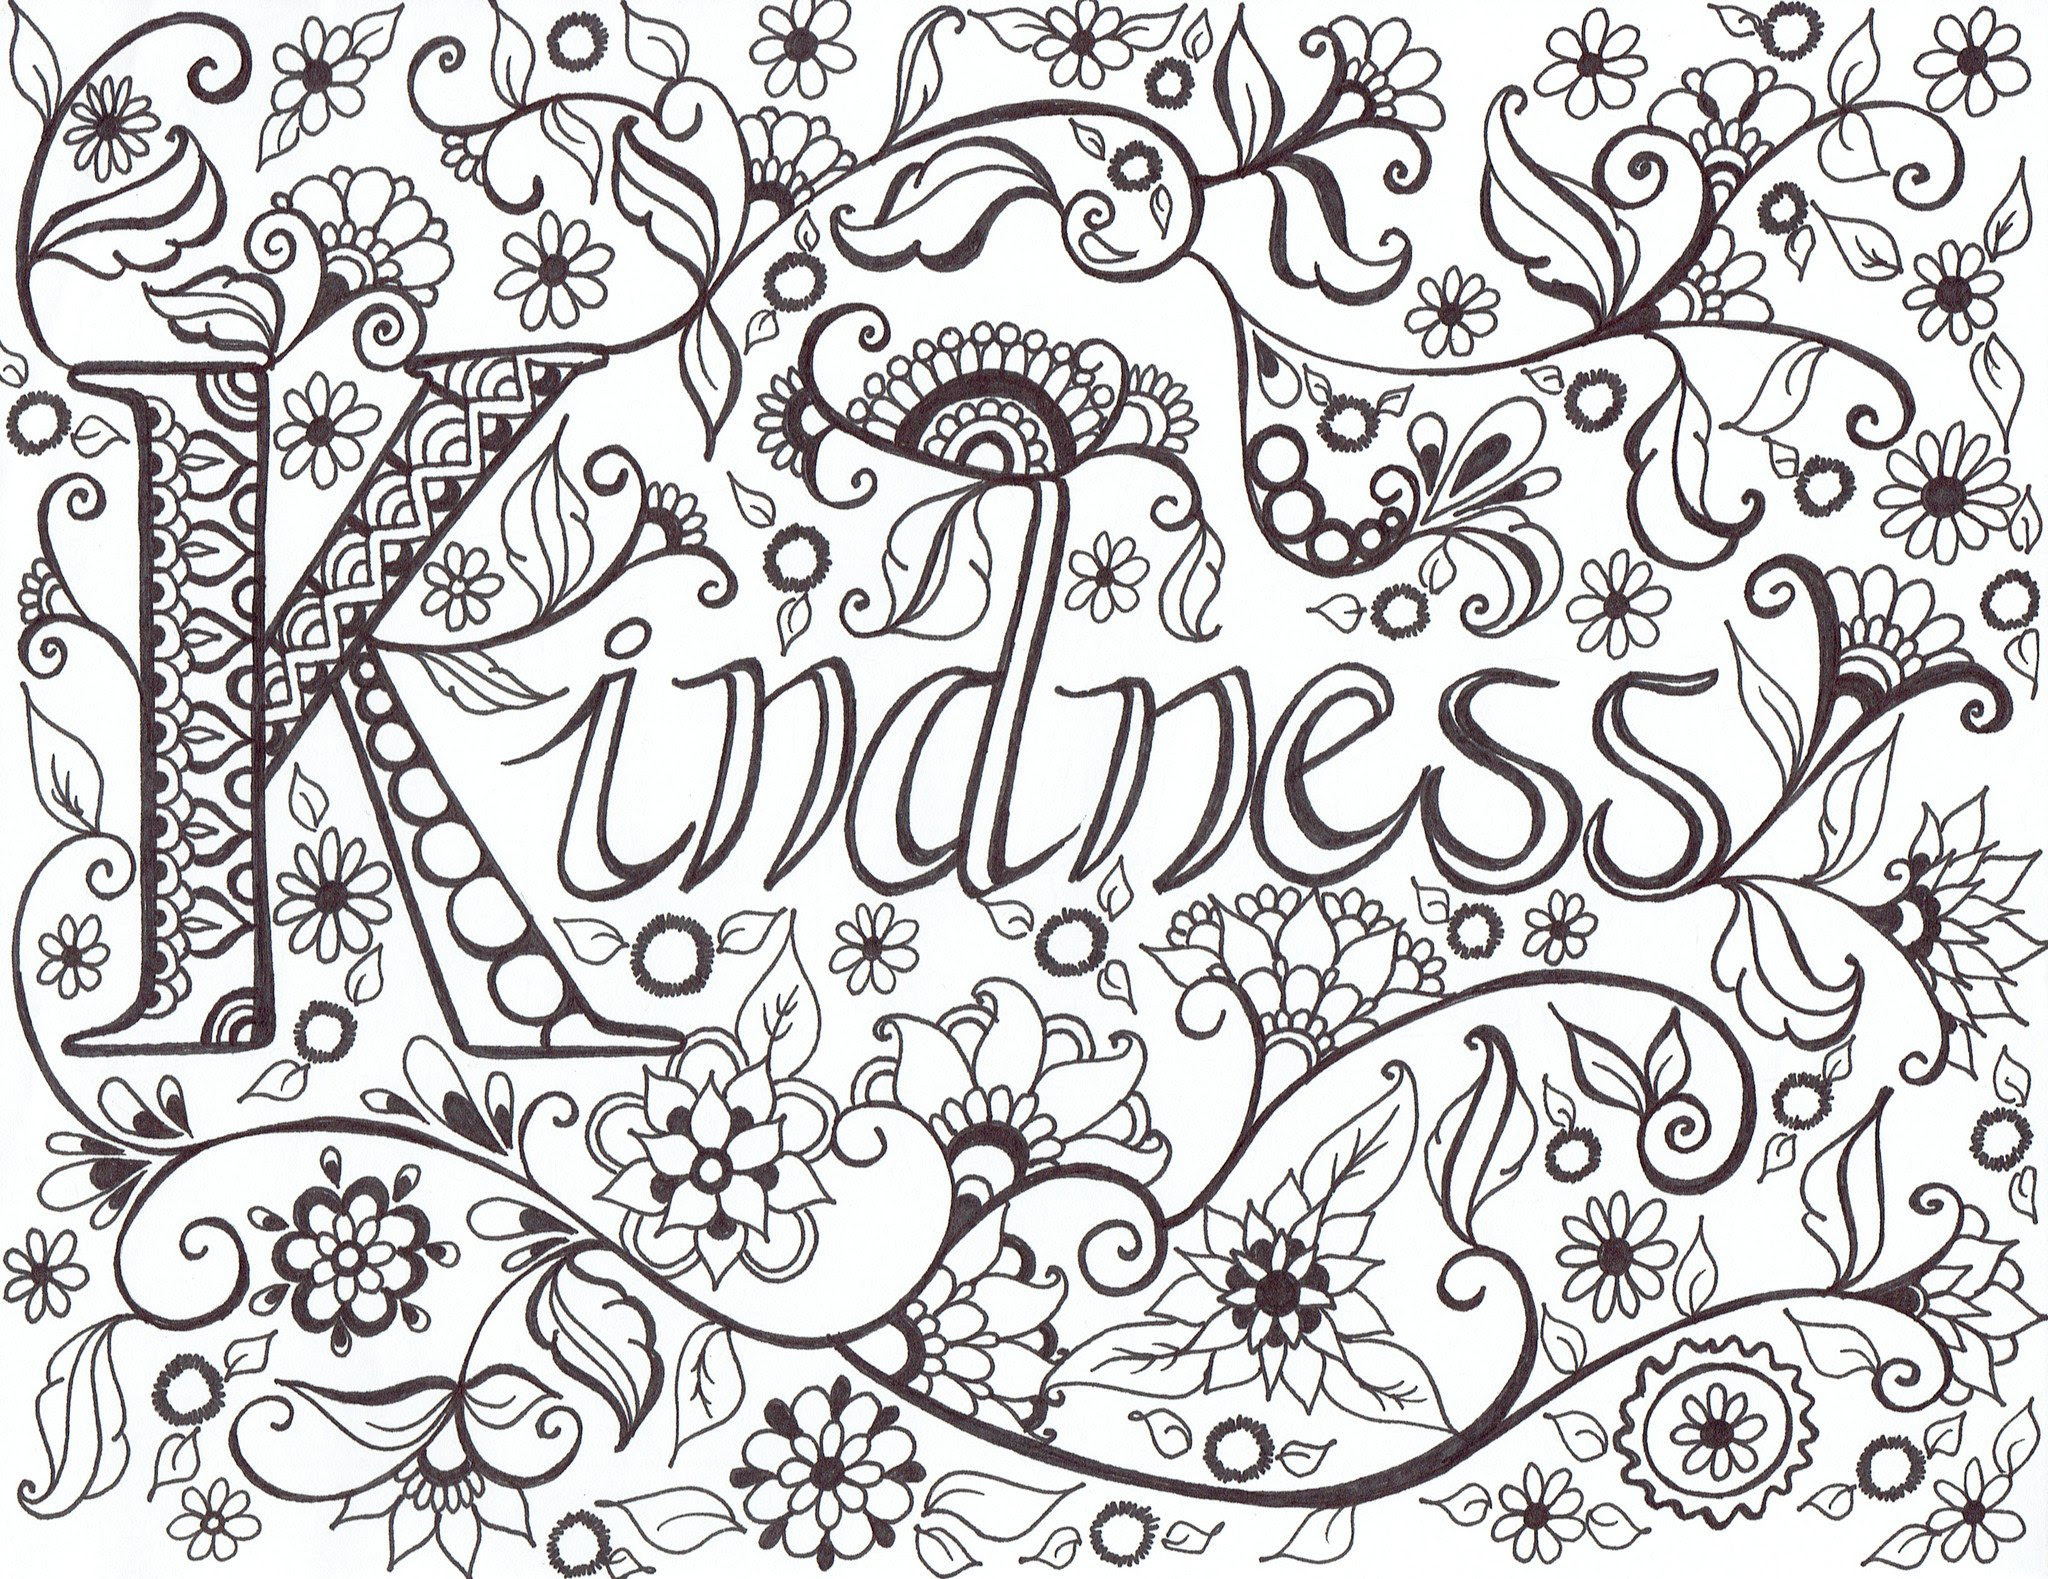 Kindness Drawing at GetDrawings | Free download